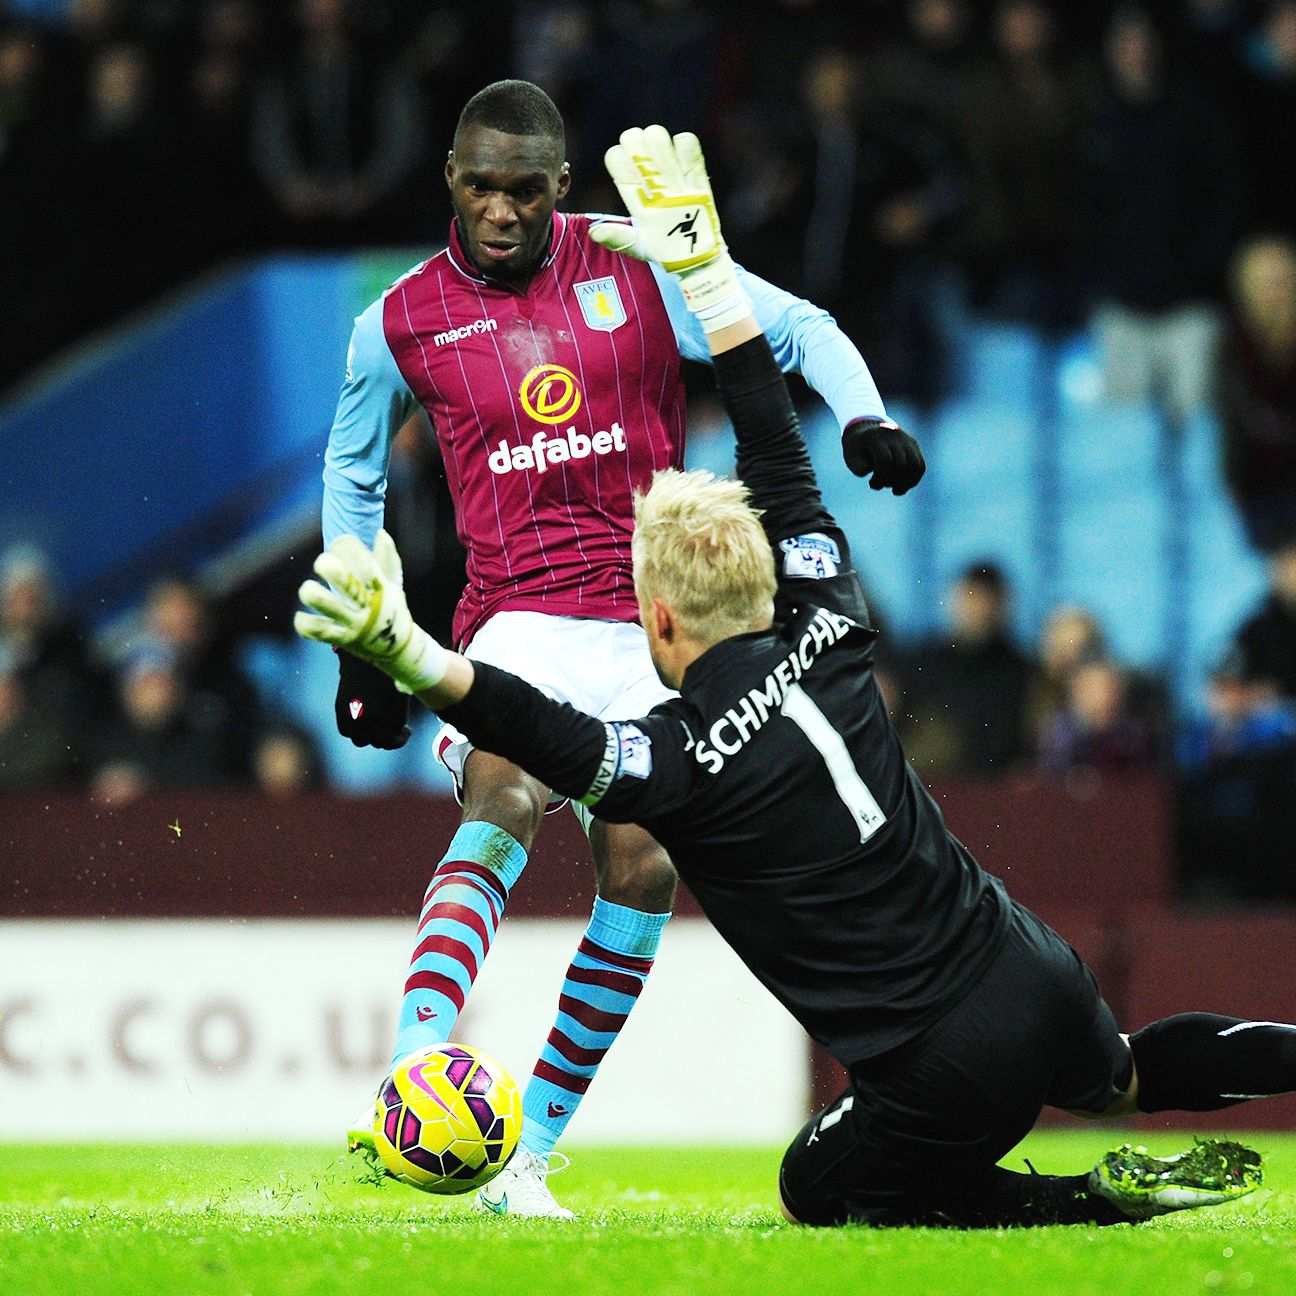 Villa's last win came back in early December against Saturday's opponent, Leicester City.